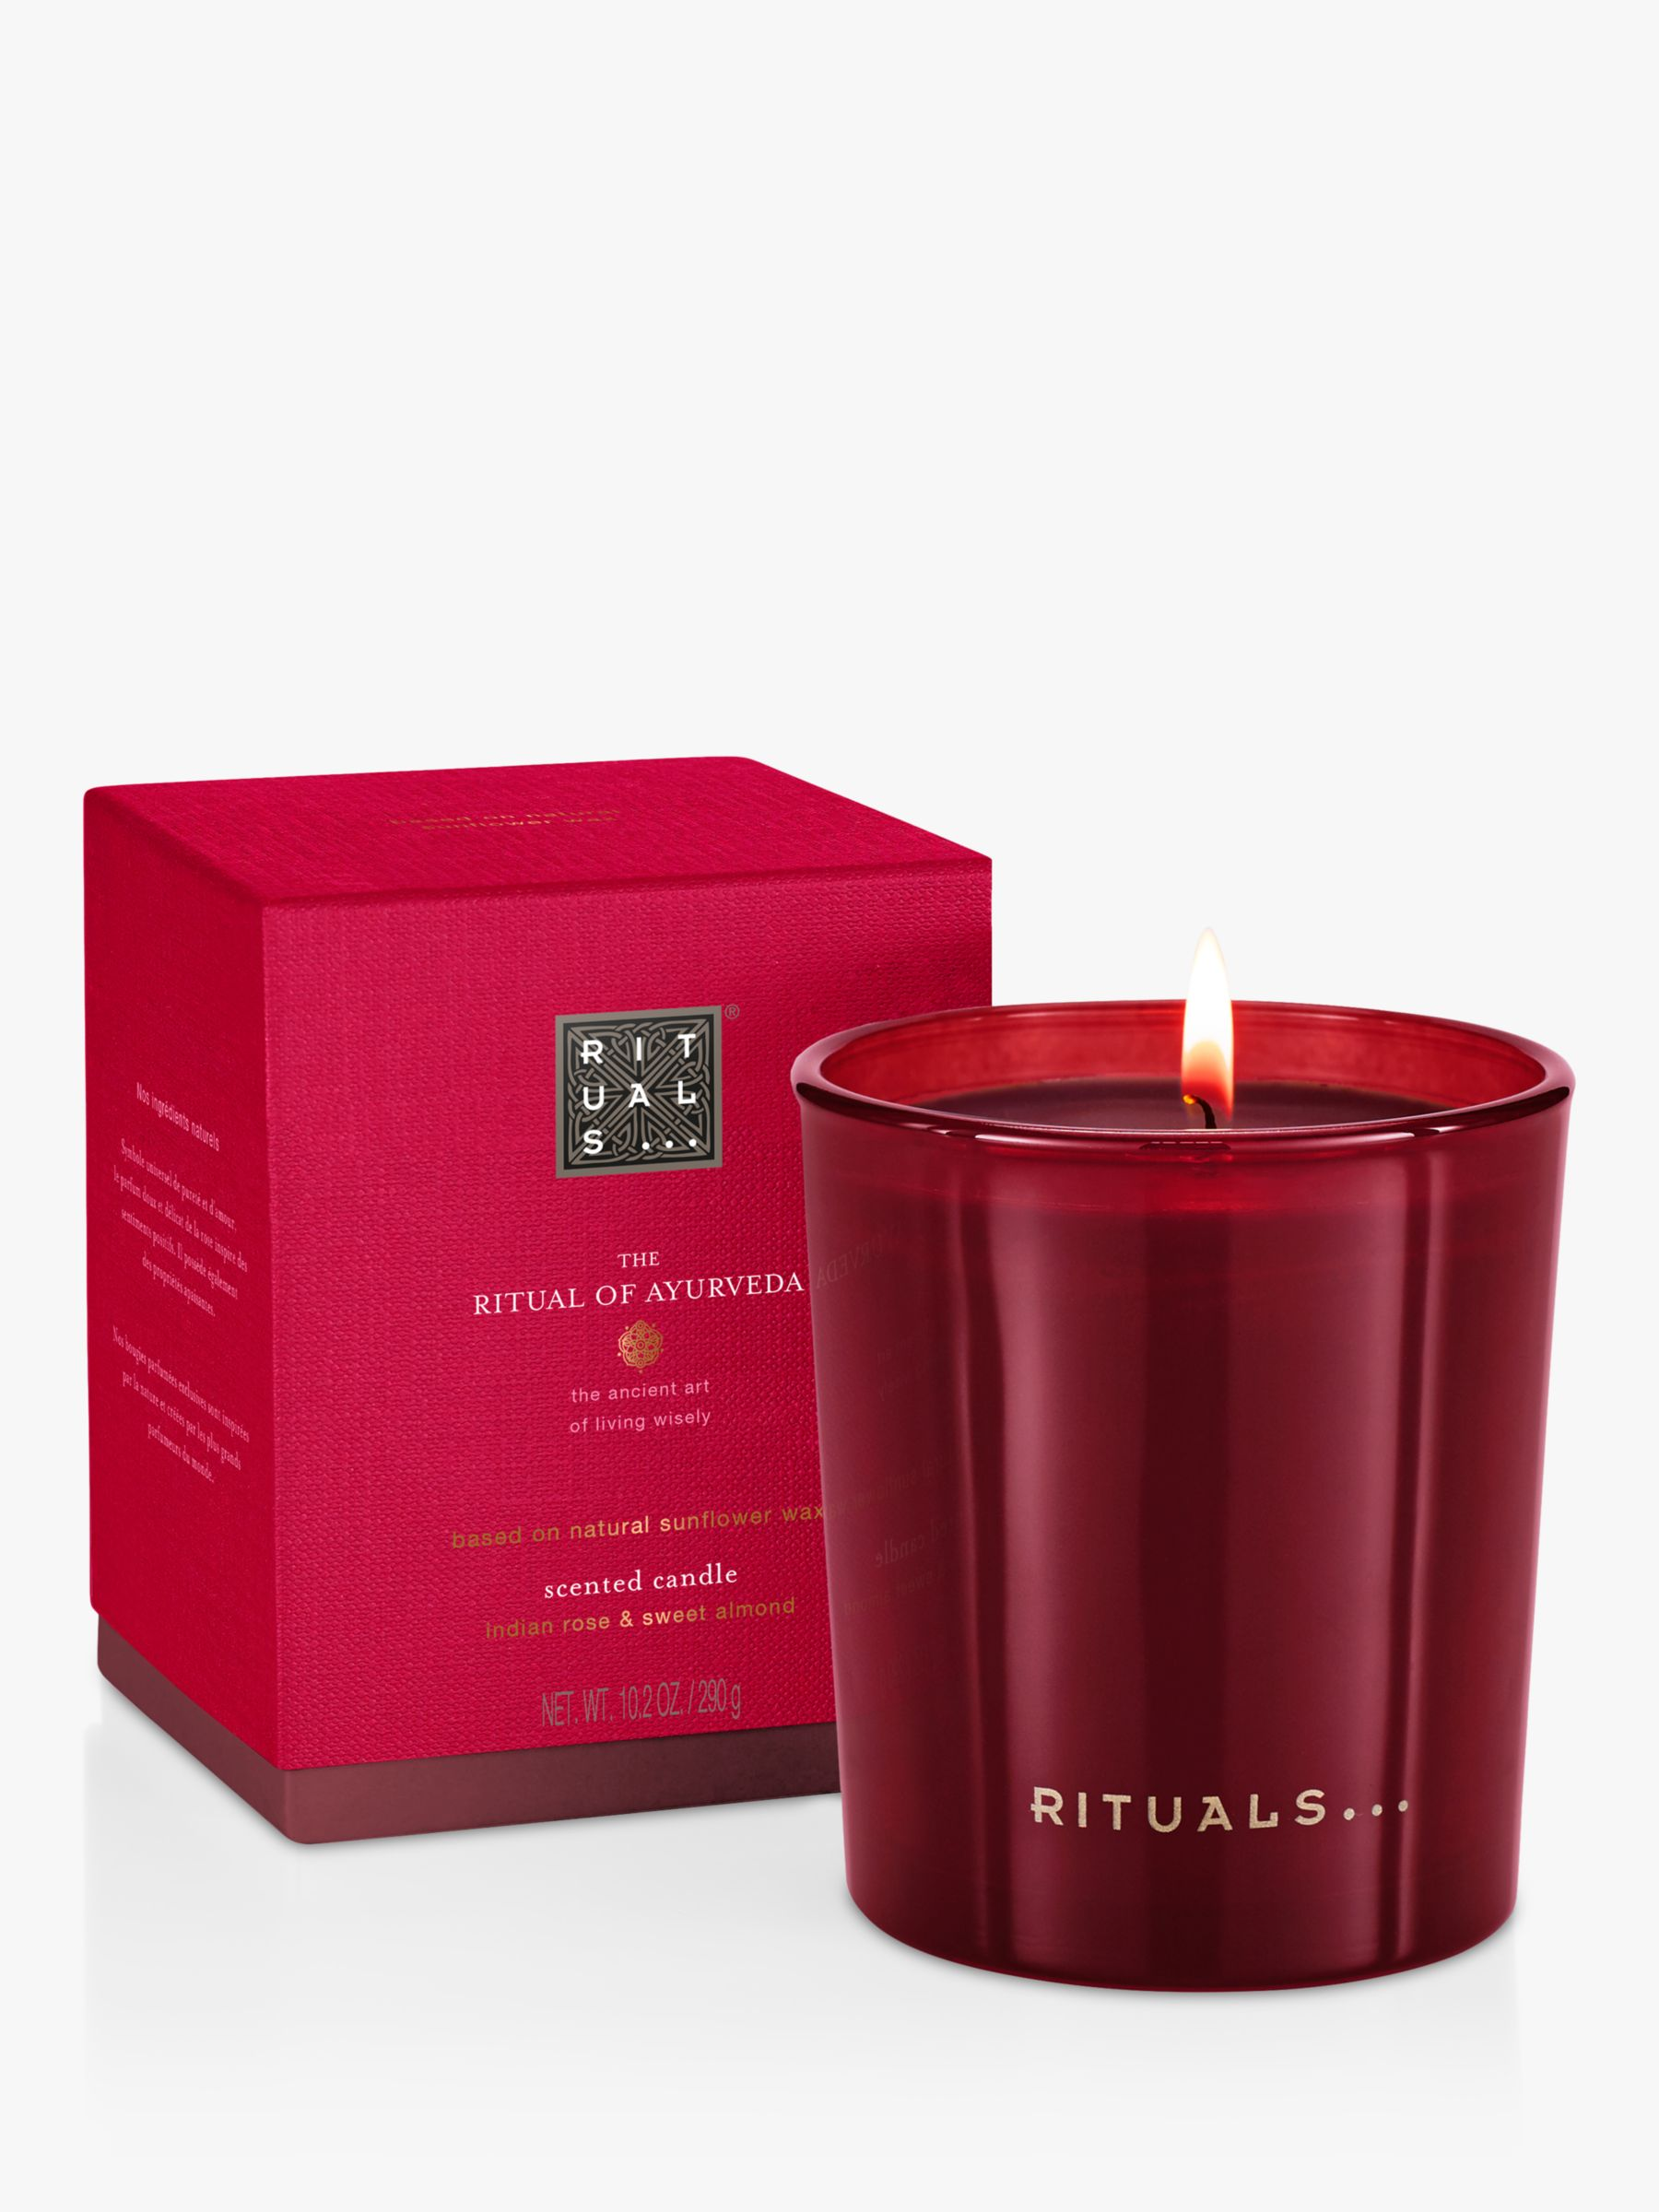 Rituals Rituals The Ritual of Ayurveda Scented Candle, 290g